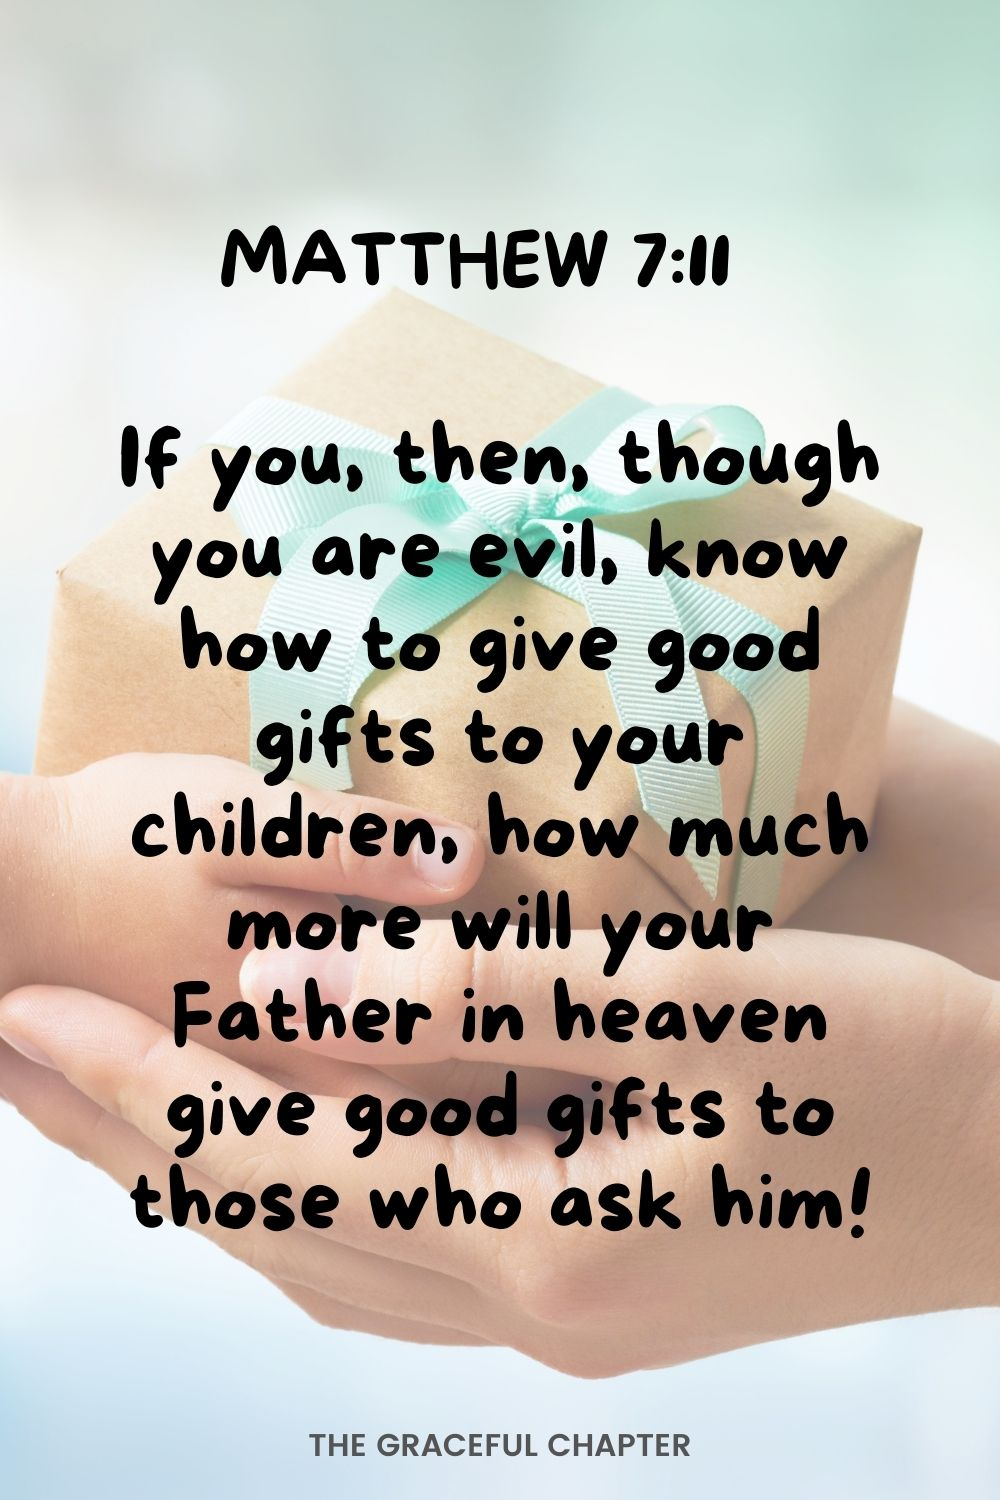 If you, then, though you are evil, know how to give good gifts to your children, how much more will your Father in heaven give good gifts to those who ask him!  Matthew 7:11